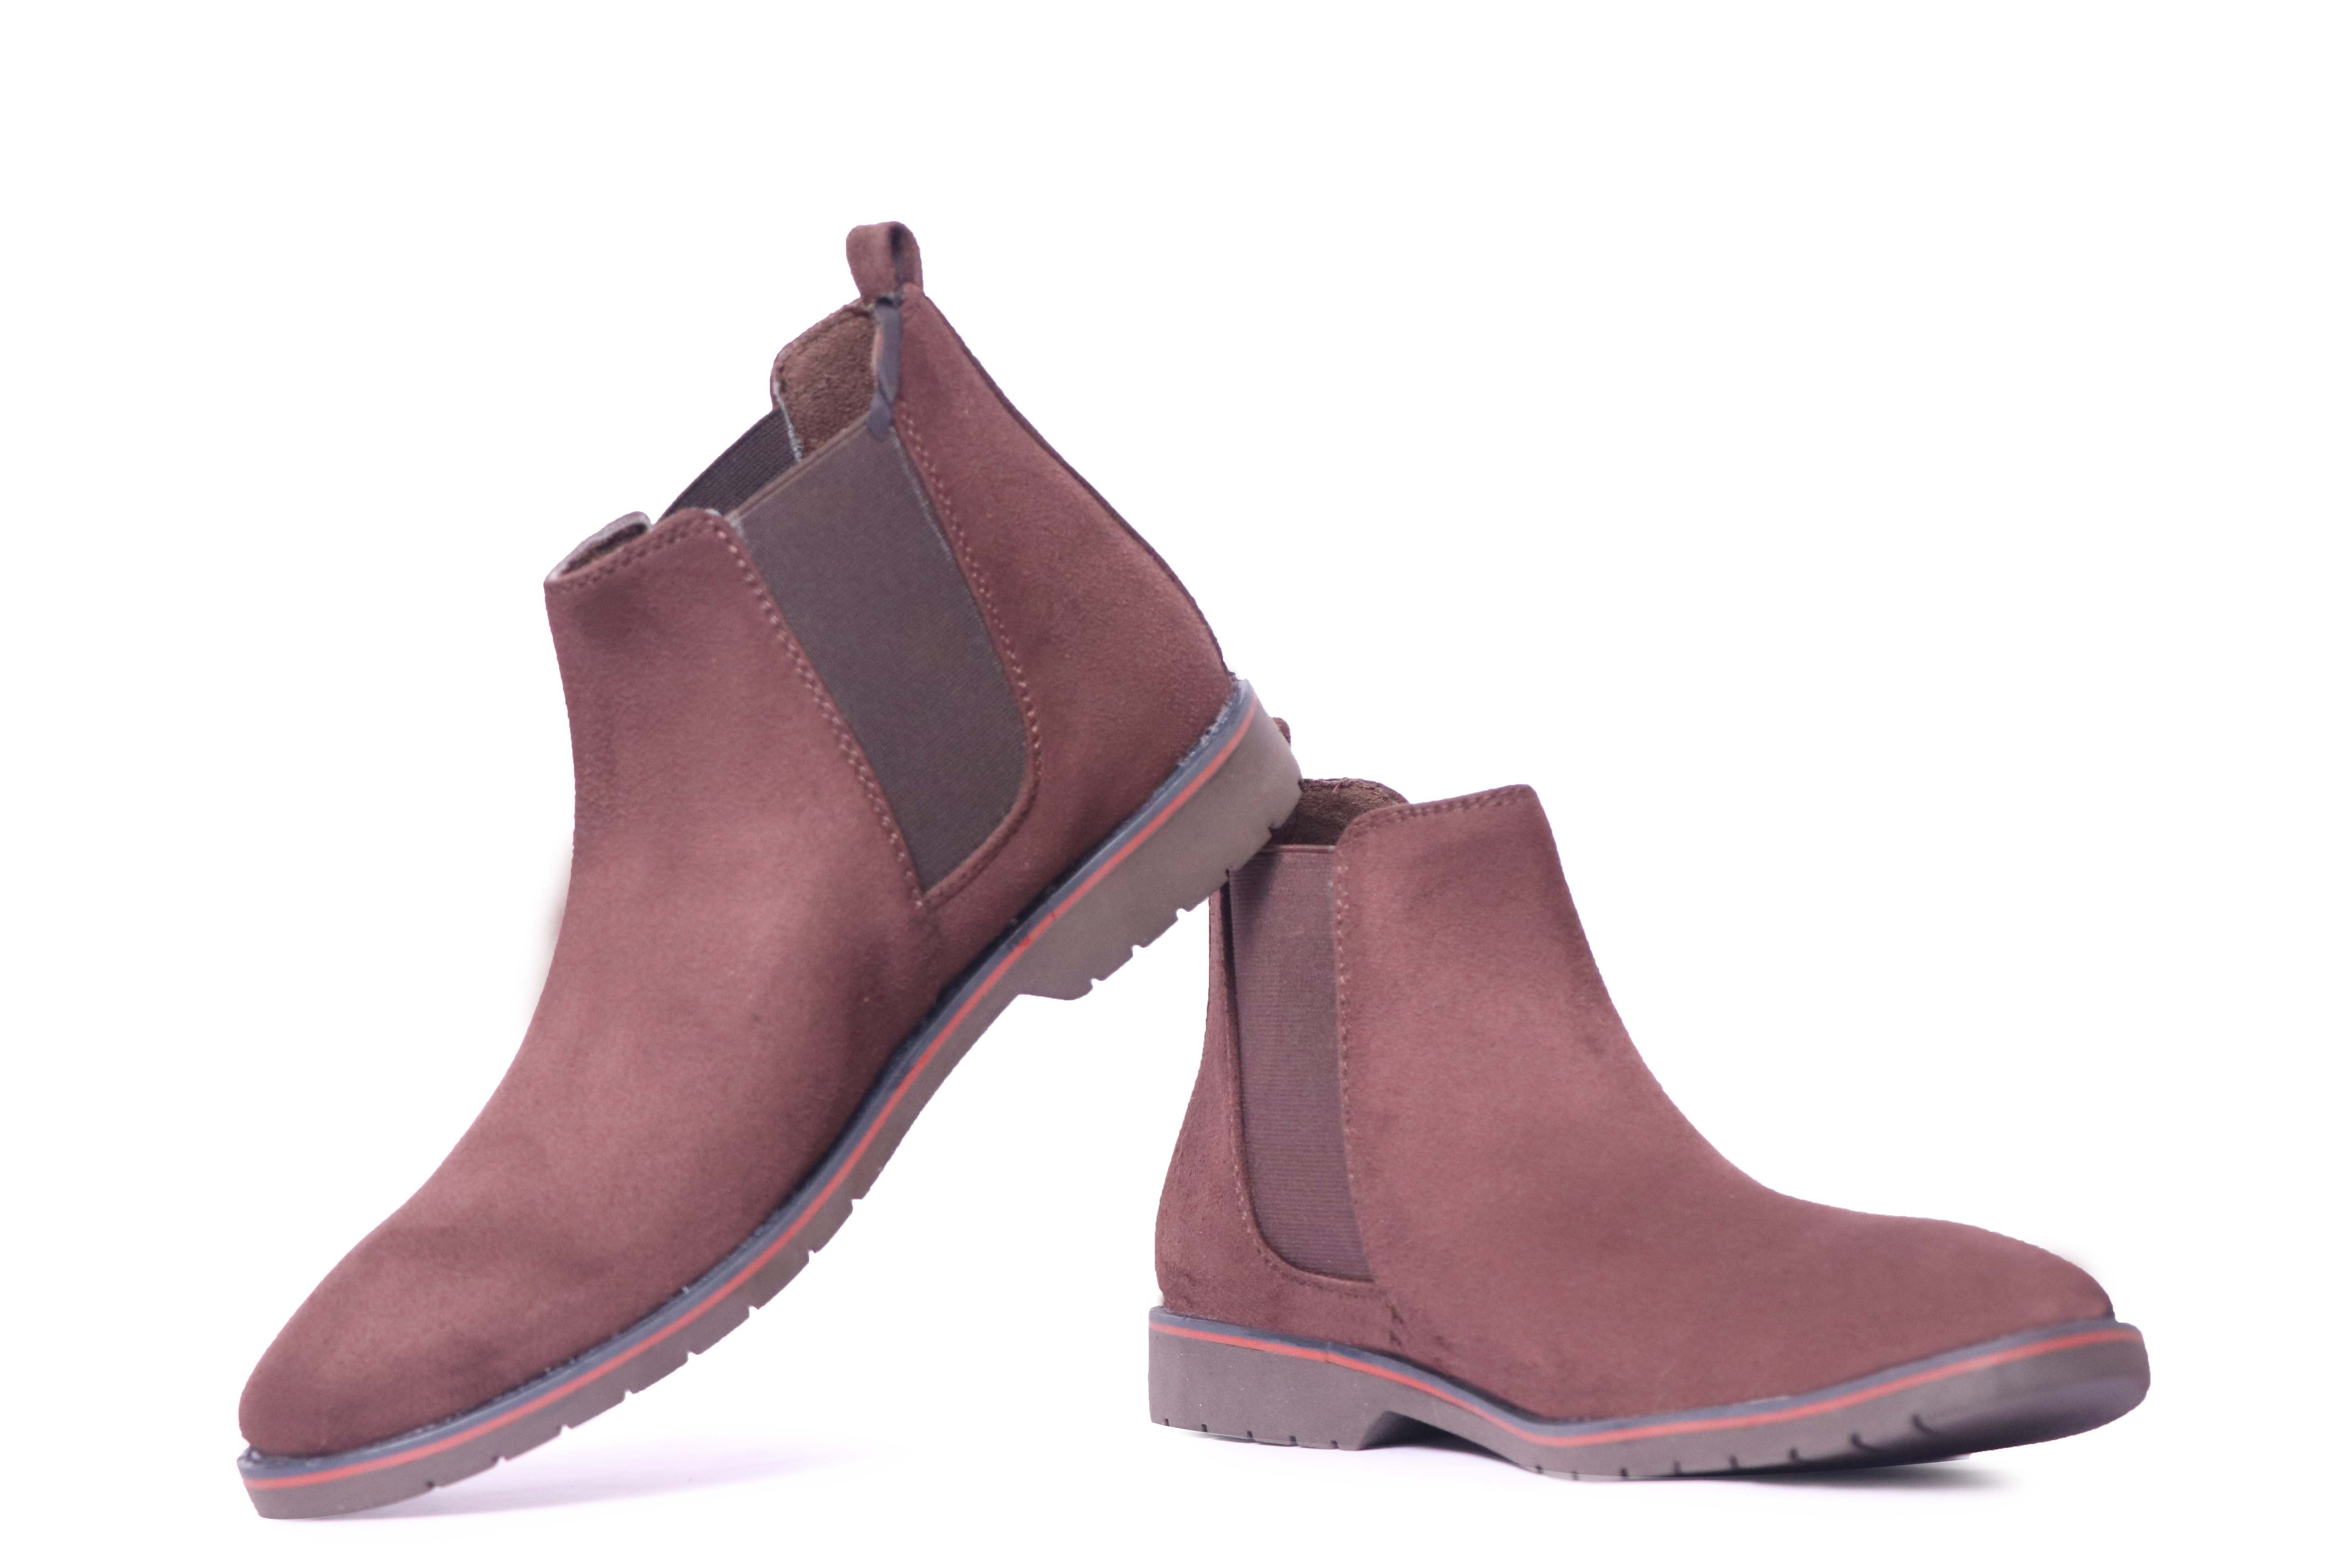 GENNEXT SMART ANKIL HIGH CHELSEA BOOT COMFORTABLE SHOES CHELSEA302 (BROWN, 6-10, 8 PAIR)